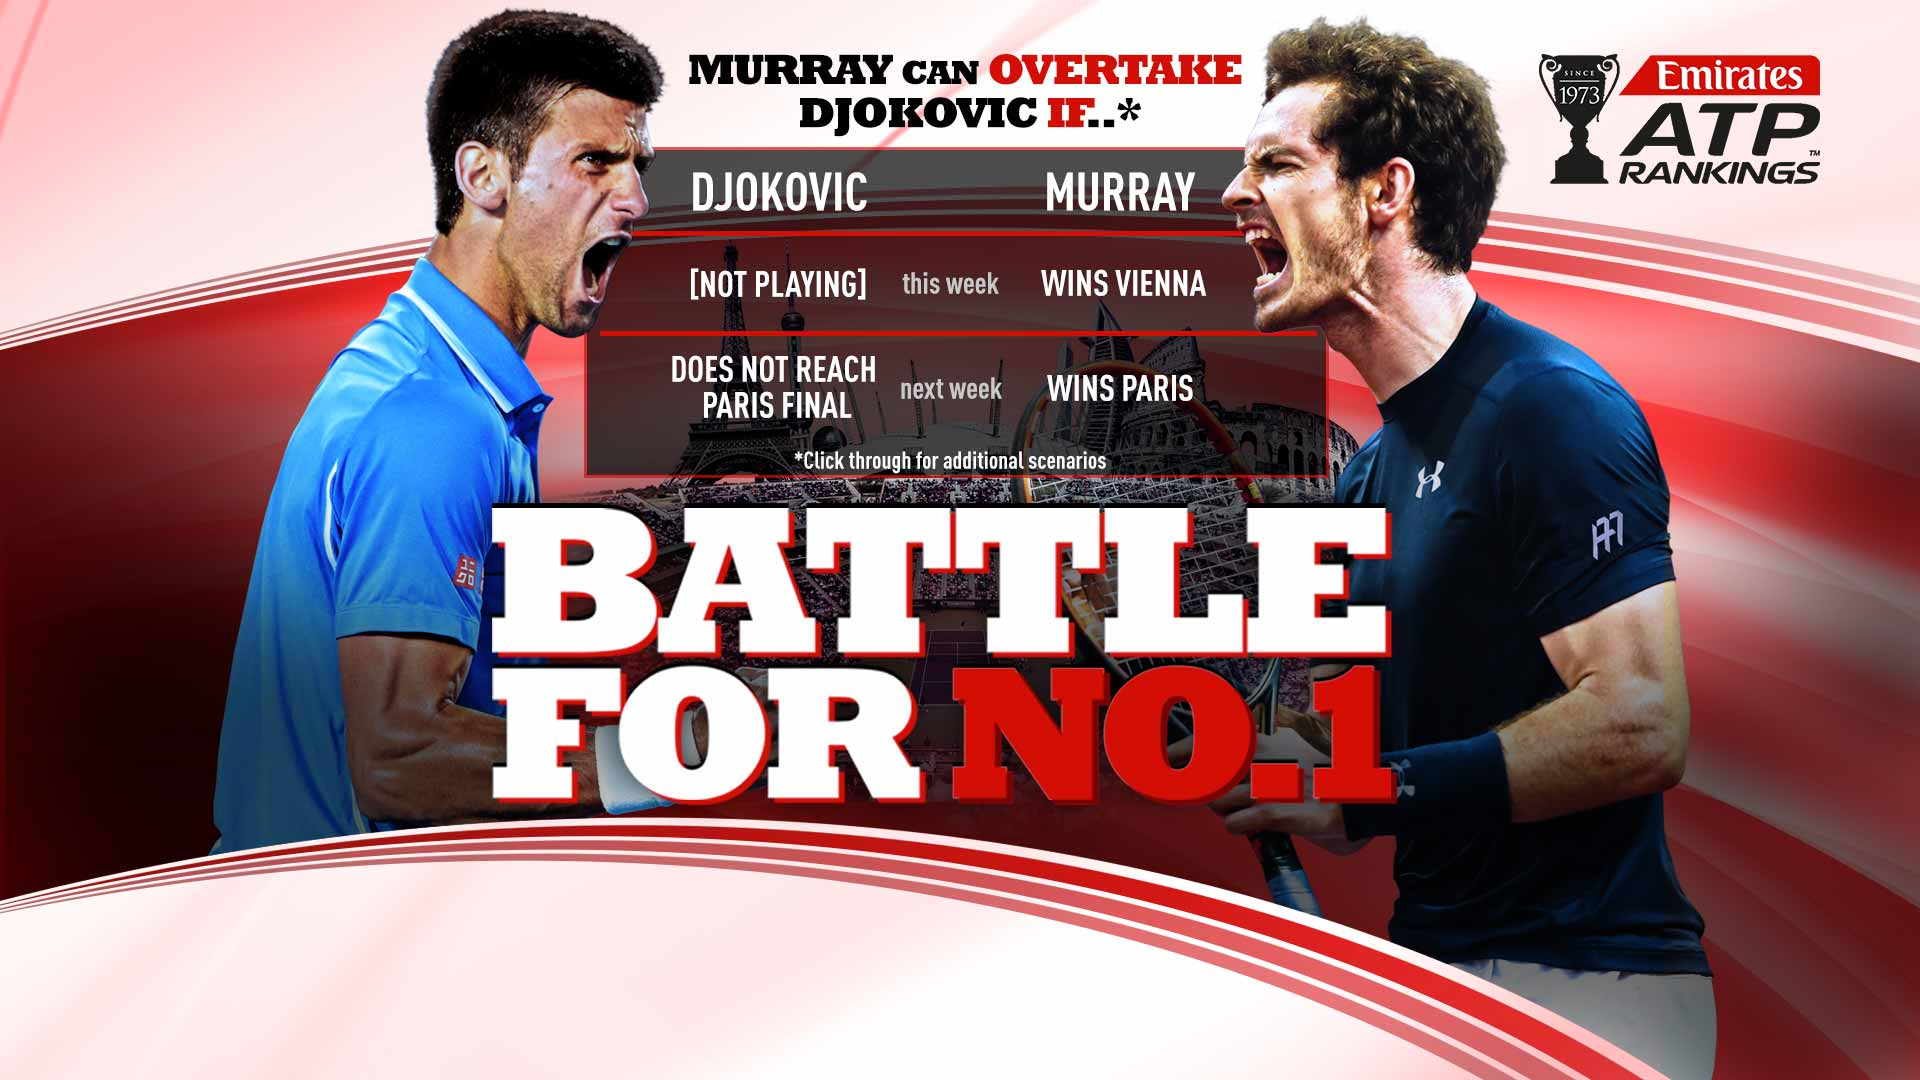 Andy Murray is in contention to unseat Novak Djokovic as World No. 1